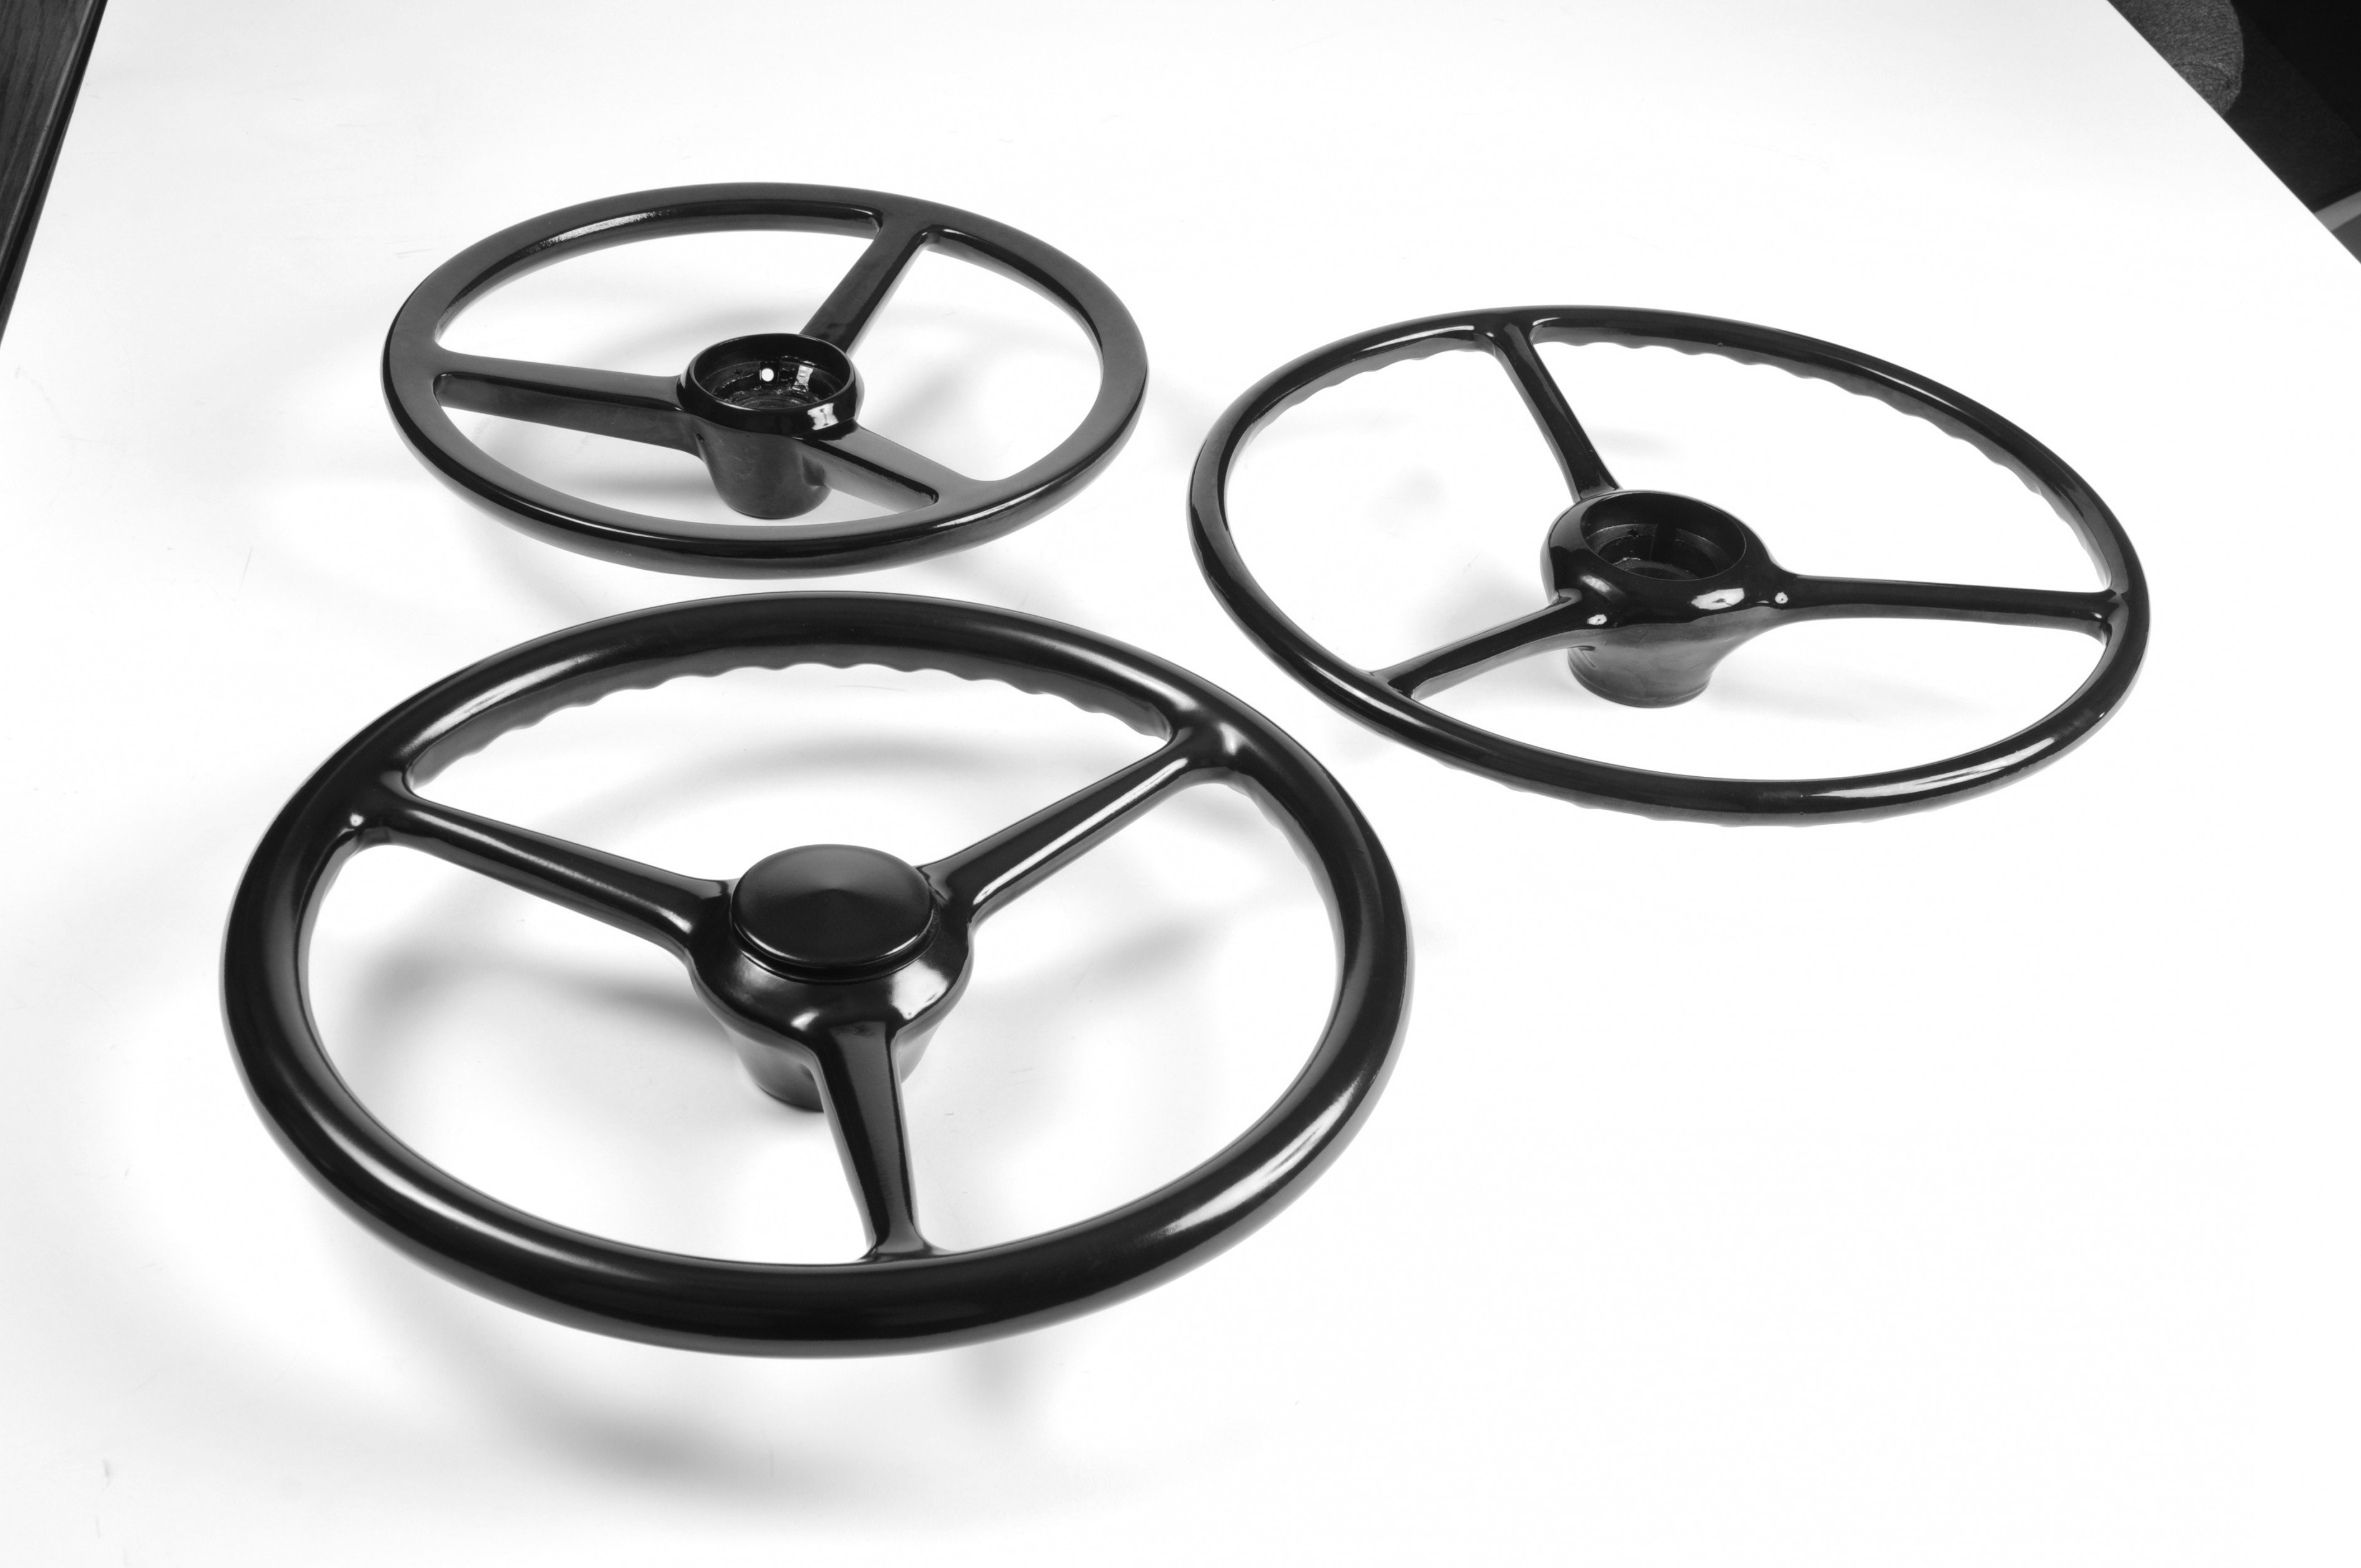 Top View of 3 Molded Rubber Steering Wheels